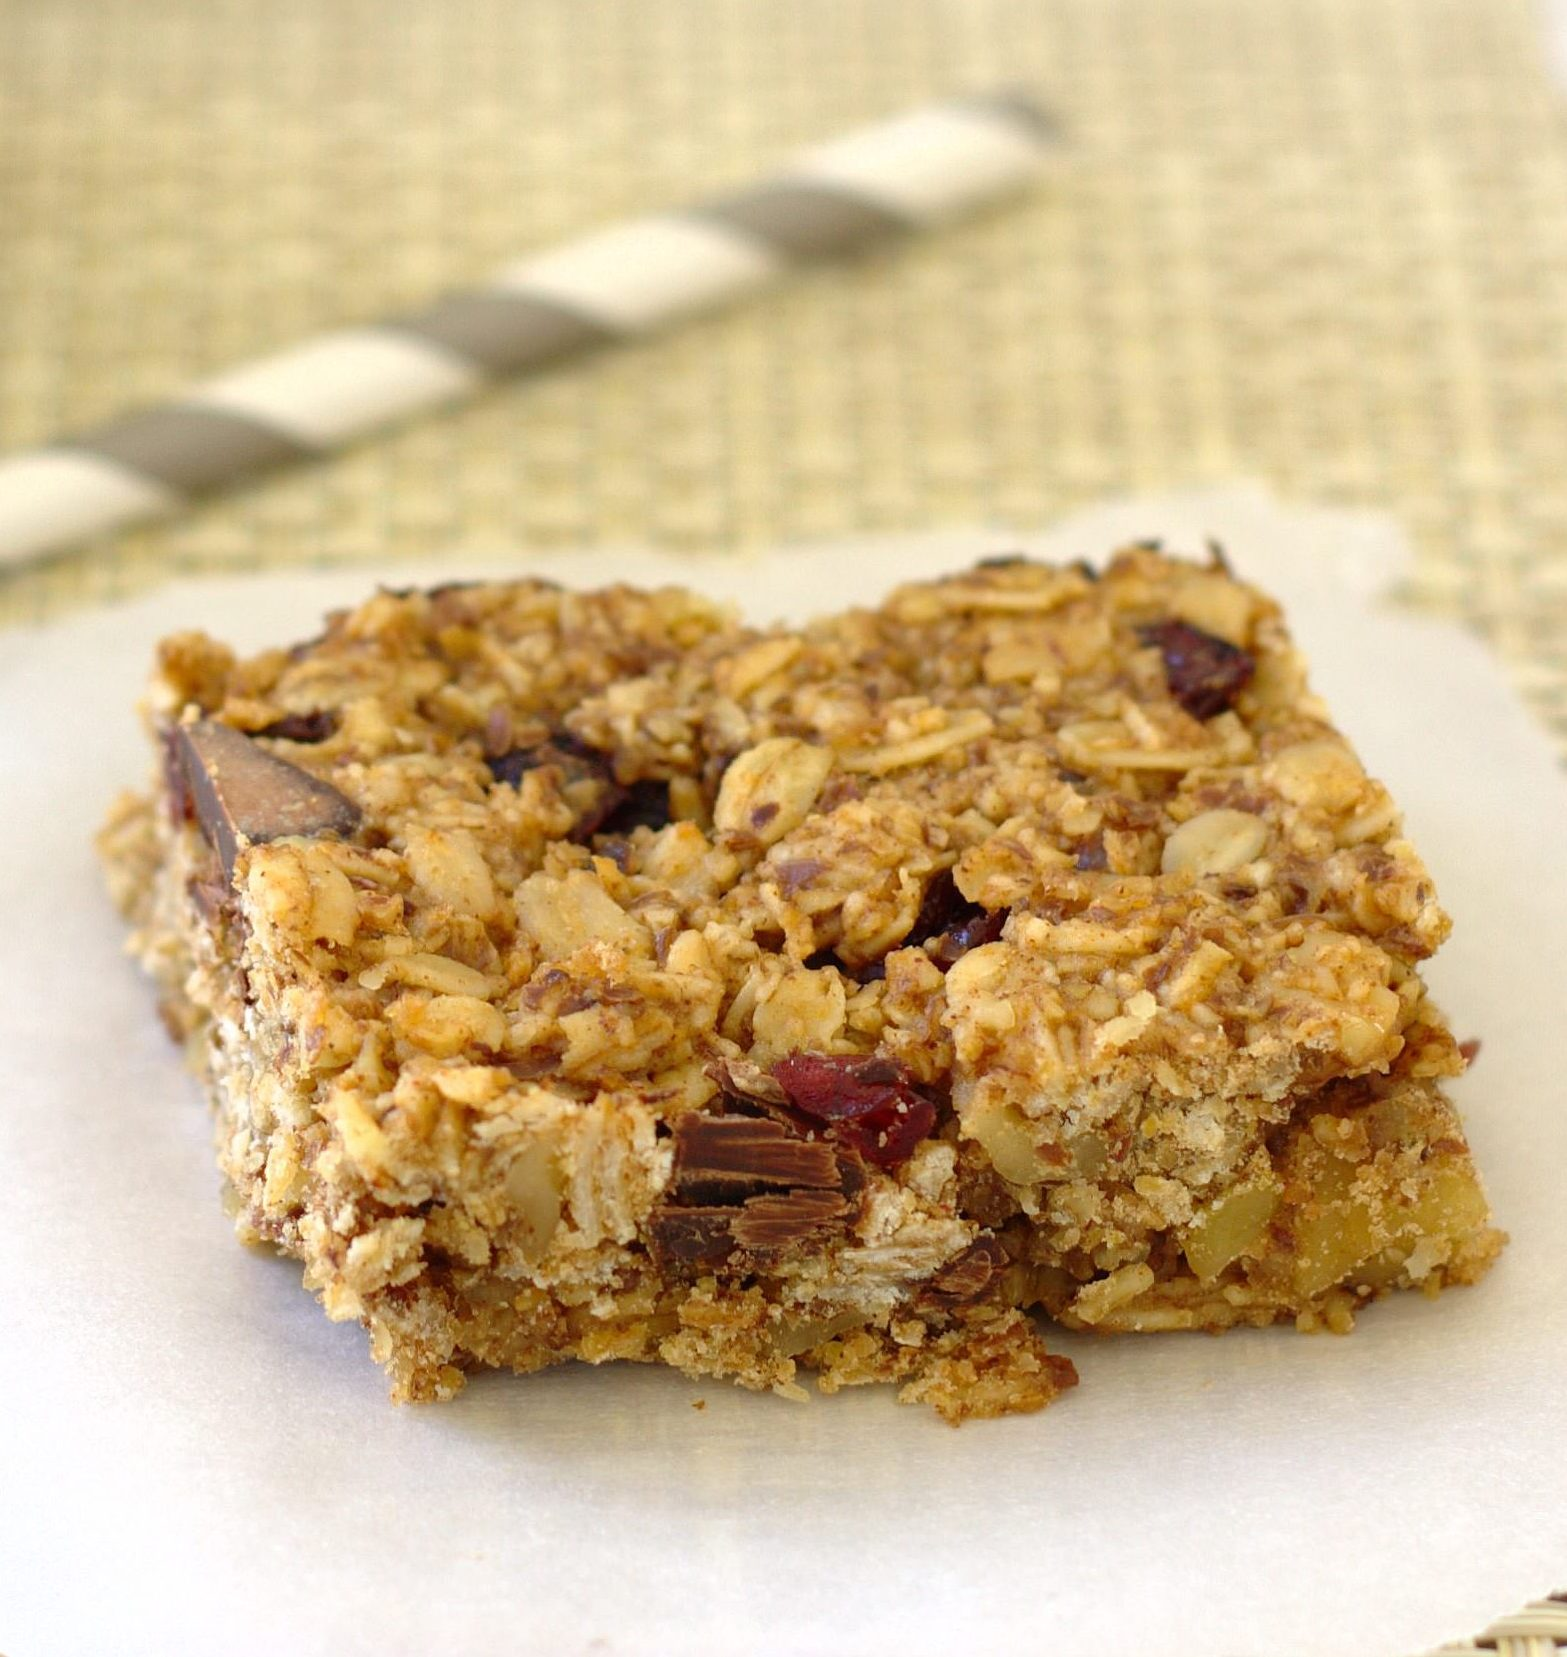 closeup view of granola bar